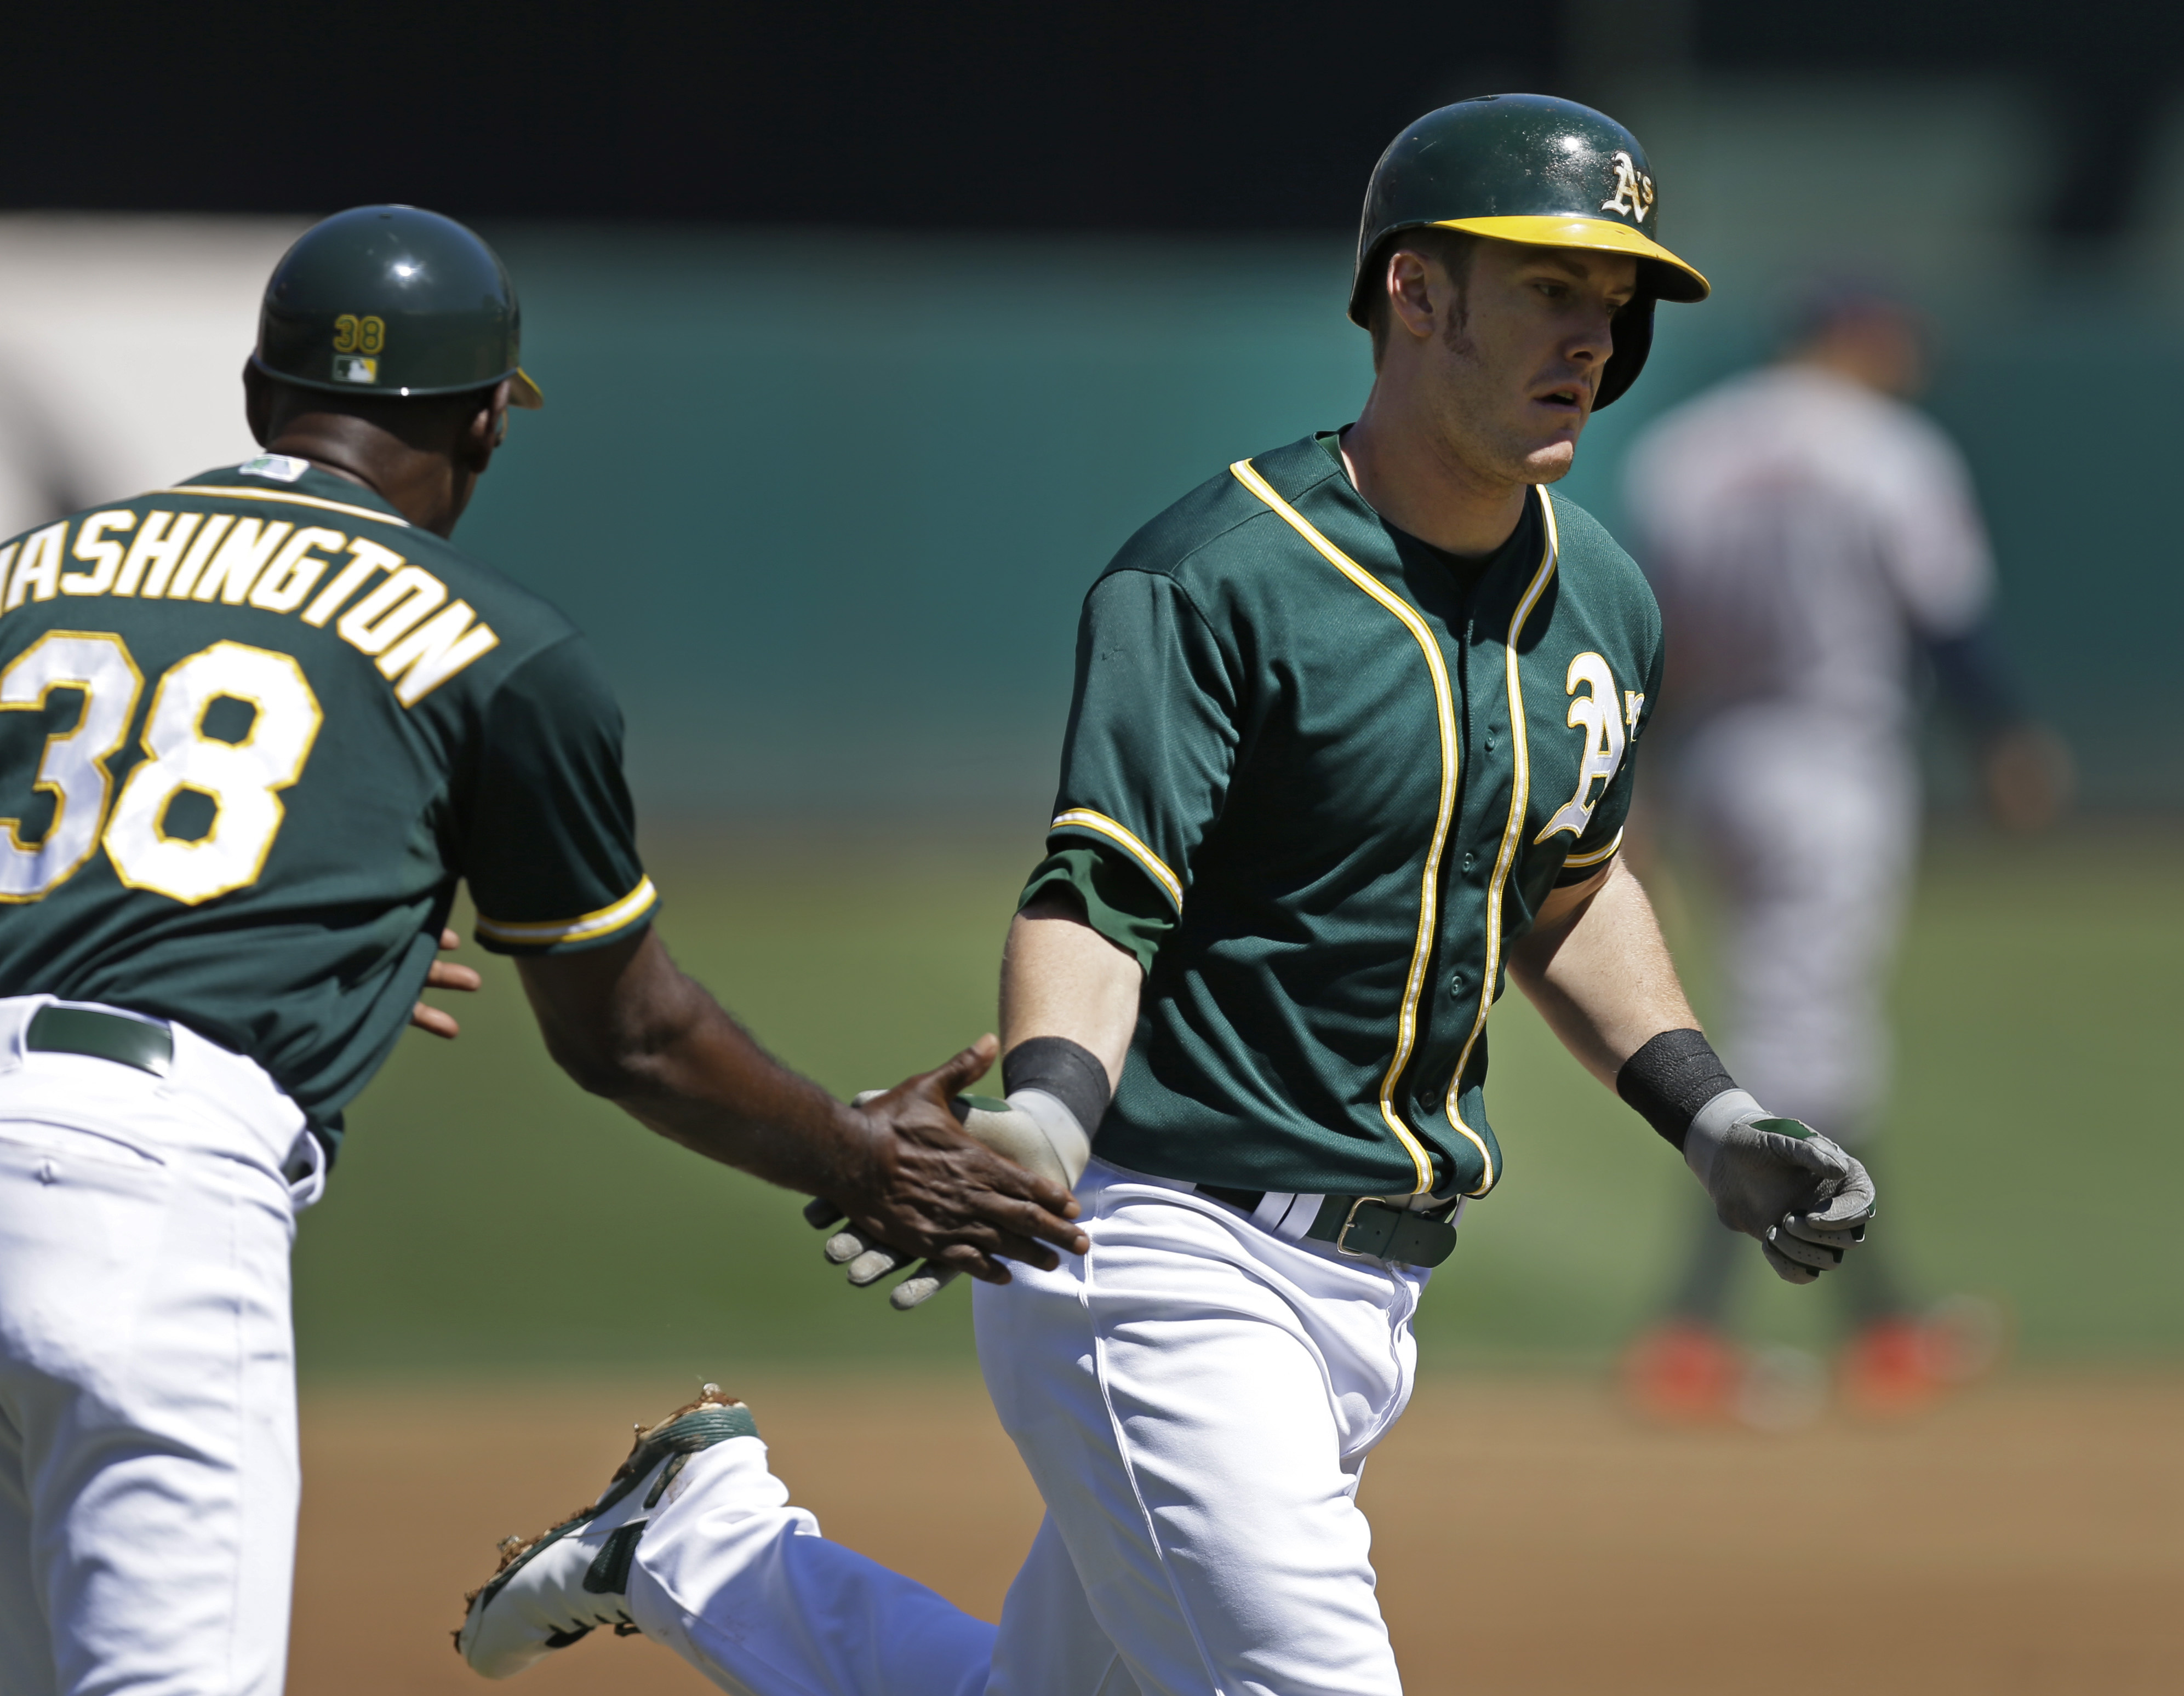 Oakland Athletics' Mark Canha, right, is congratulated by third base coach Ron Washington (38) after hitting a home run off Houston Astros pitcher Mike Fiers in the first inning of a baseball game Monday, Sept. 7, 2015, in Oakland, Calif. (AP Photo/Ben Ma